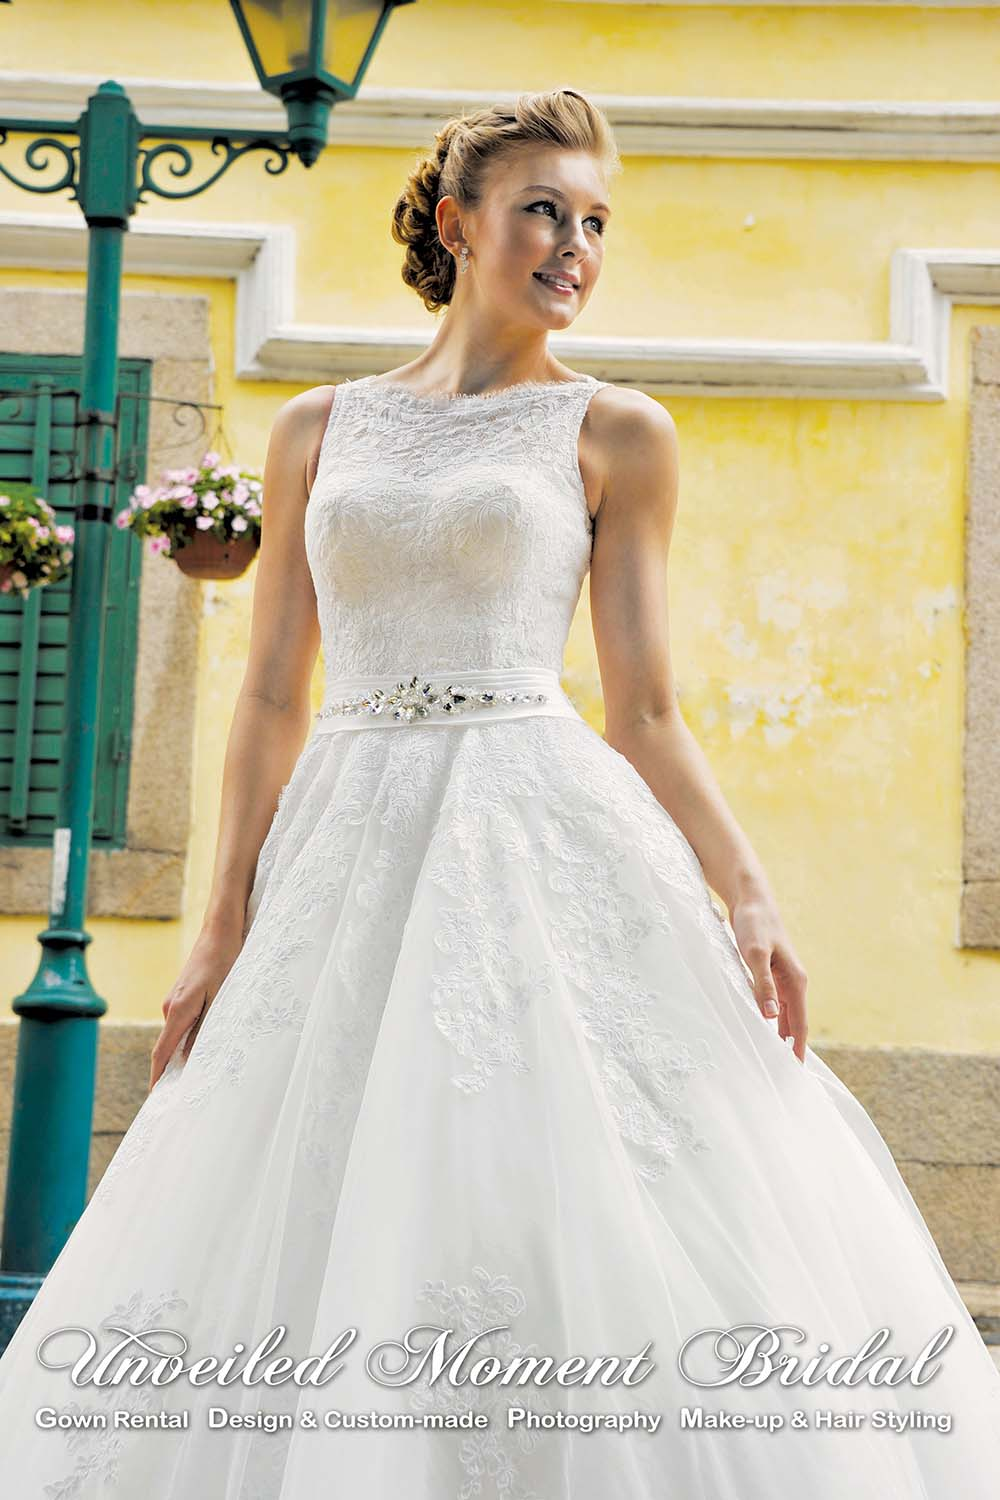 Sleeveless, floor-length, lace-up wedding gown with a keyhole open back 無袖, 蕾絲, 心形美背, 齊地傘裙款婚紗